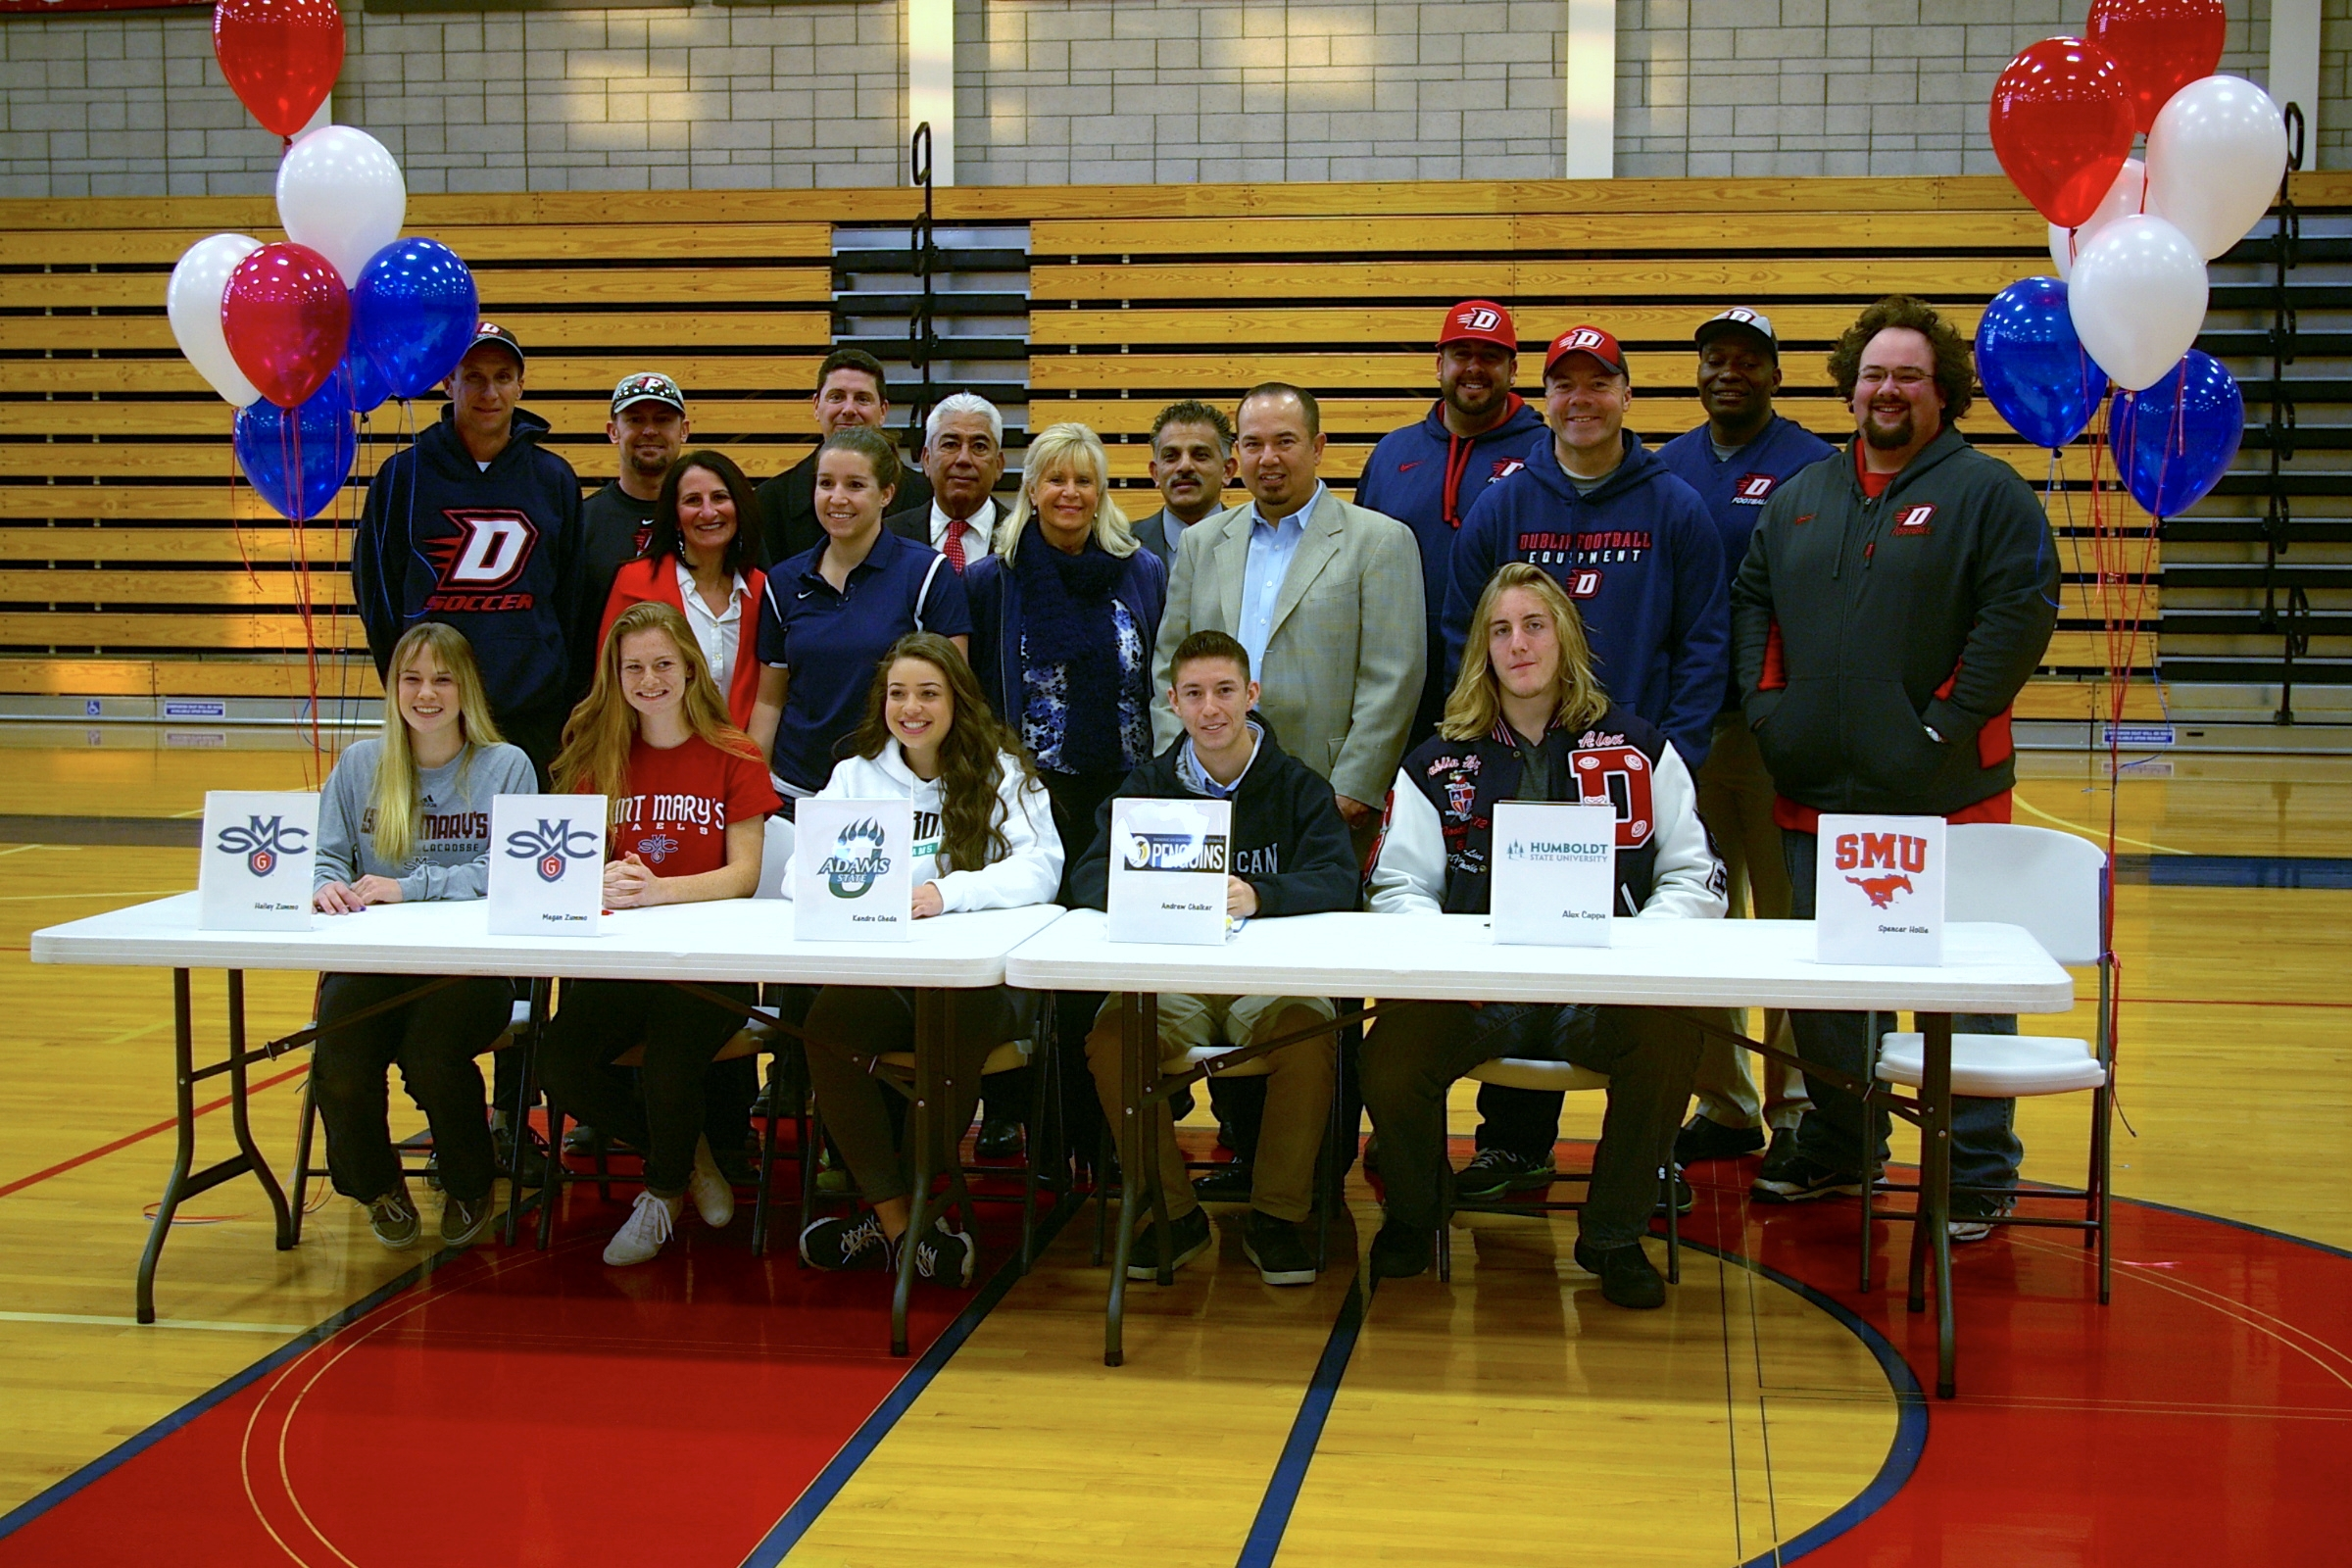 College Bound Dublin High School Student-Athletes Reflect ...